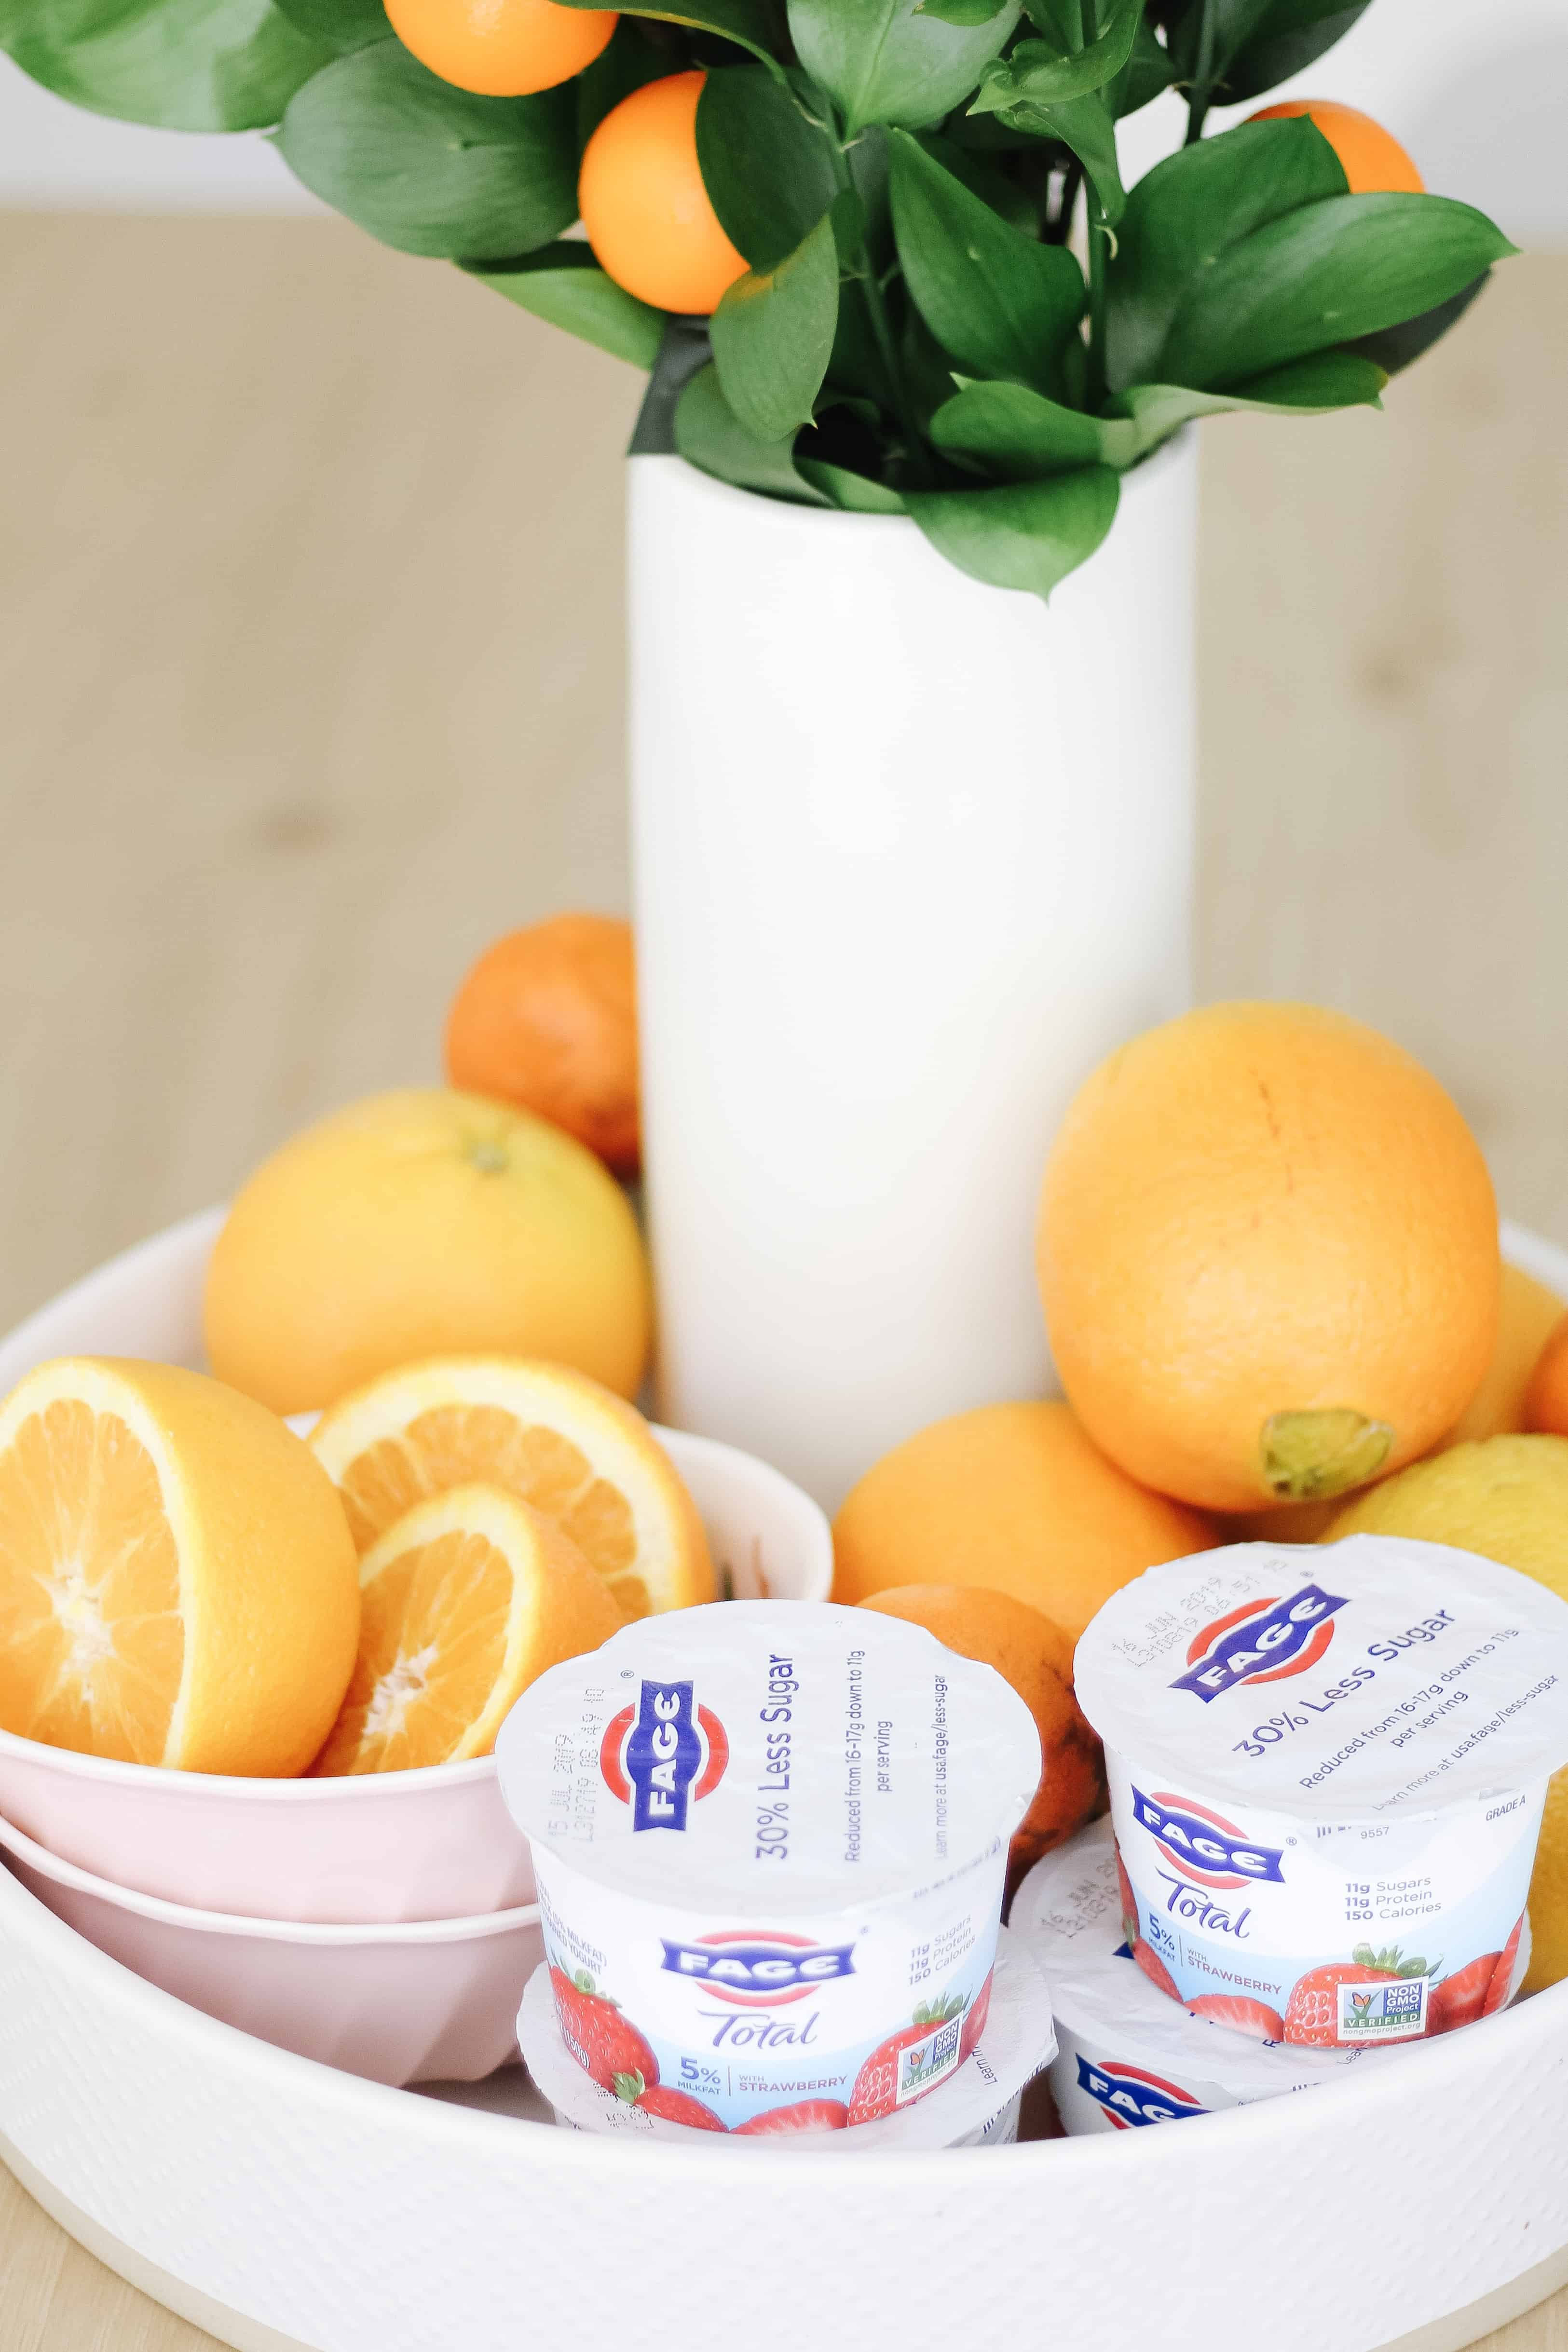 Fage yogurt on tray with oranges